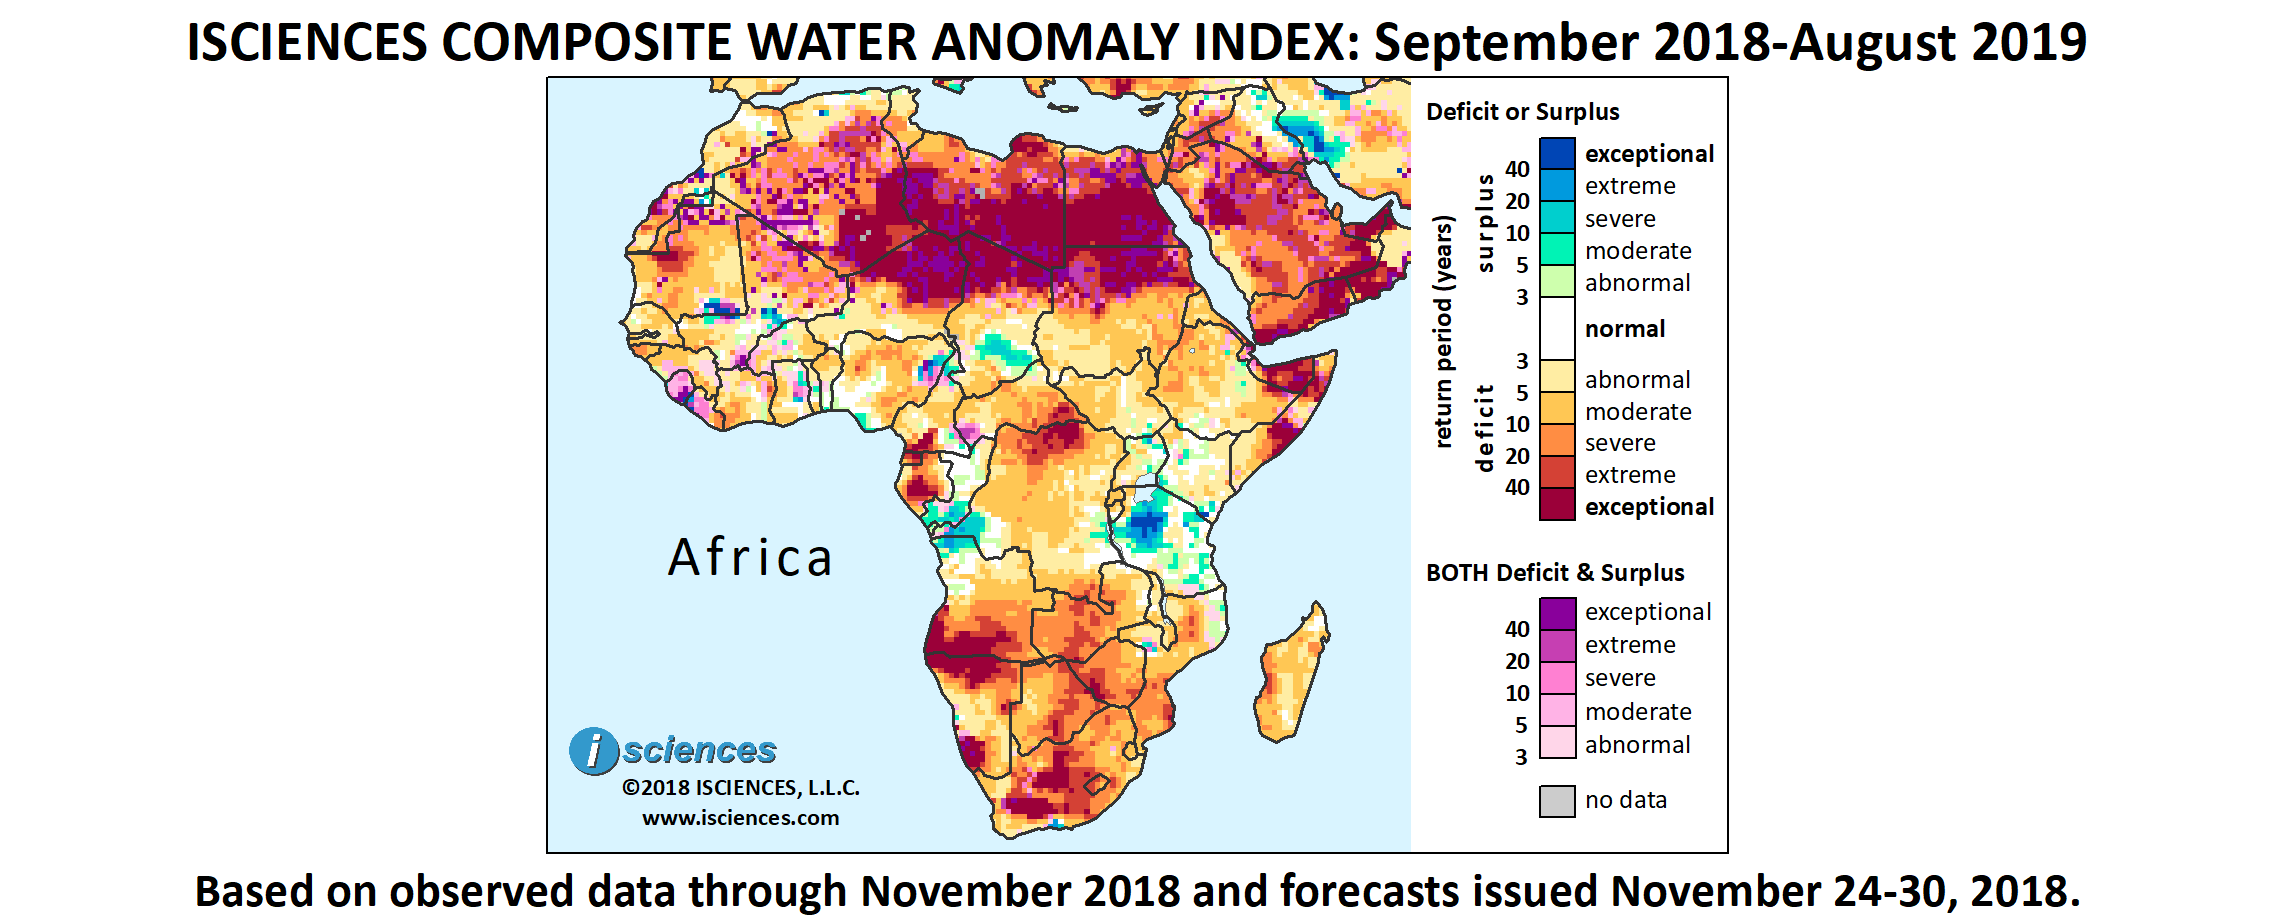 ISciences_Africa_R201811_12mo_twit_pic.png